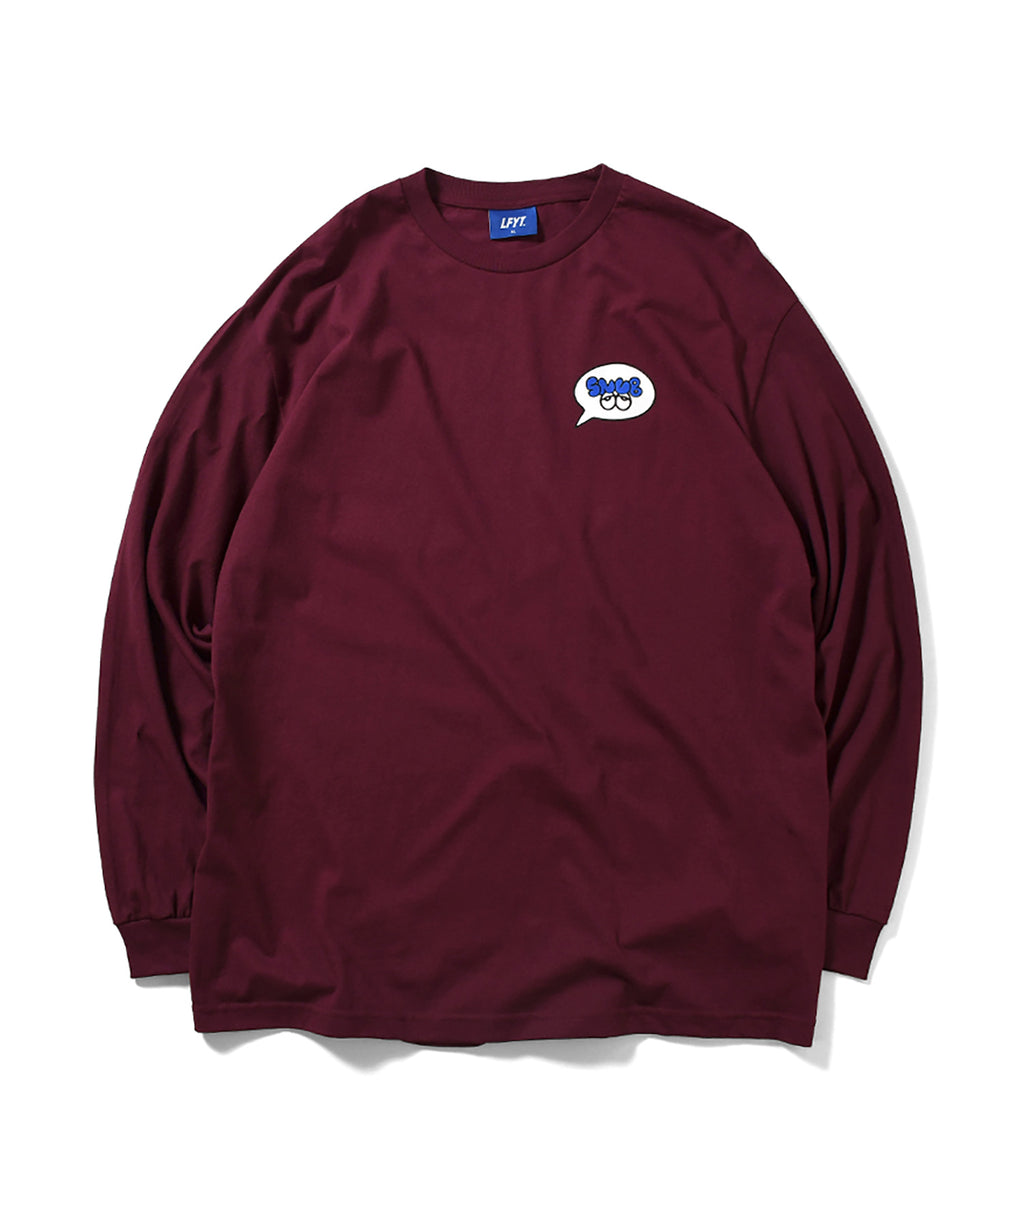 LFYT x Rabuns - THROW UP L/S TEE BURGUNDY LA200103